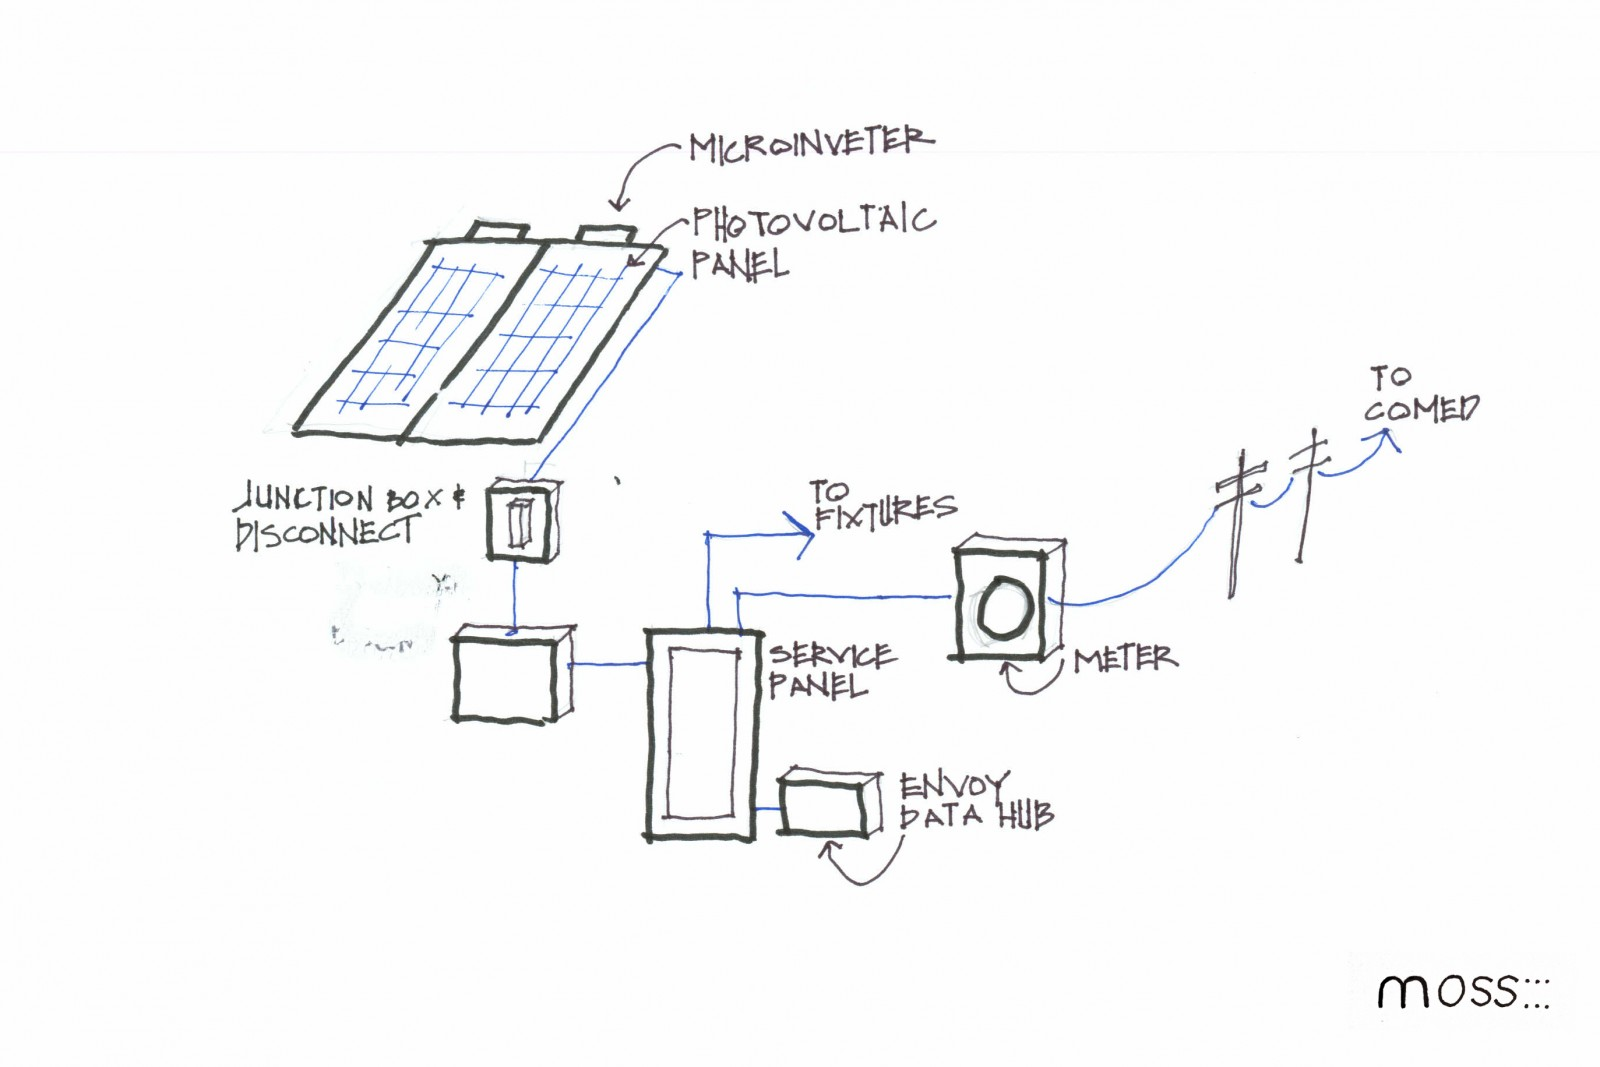 Solar Panels In Chicago What You Need To Know Moss Design Wiring Diagram Further Ac Disconnect Box On How Create Electricity A